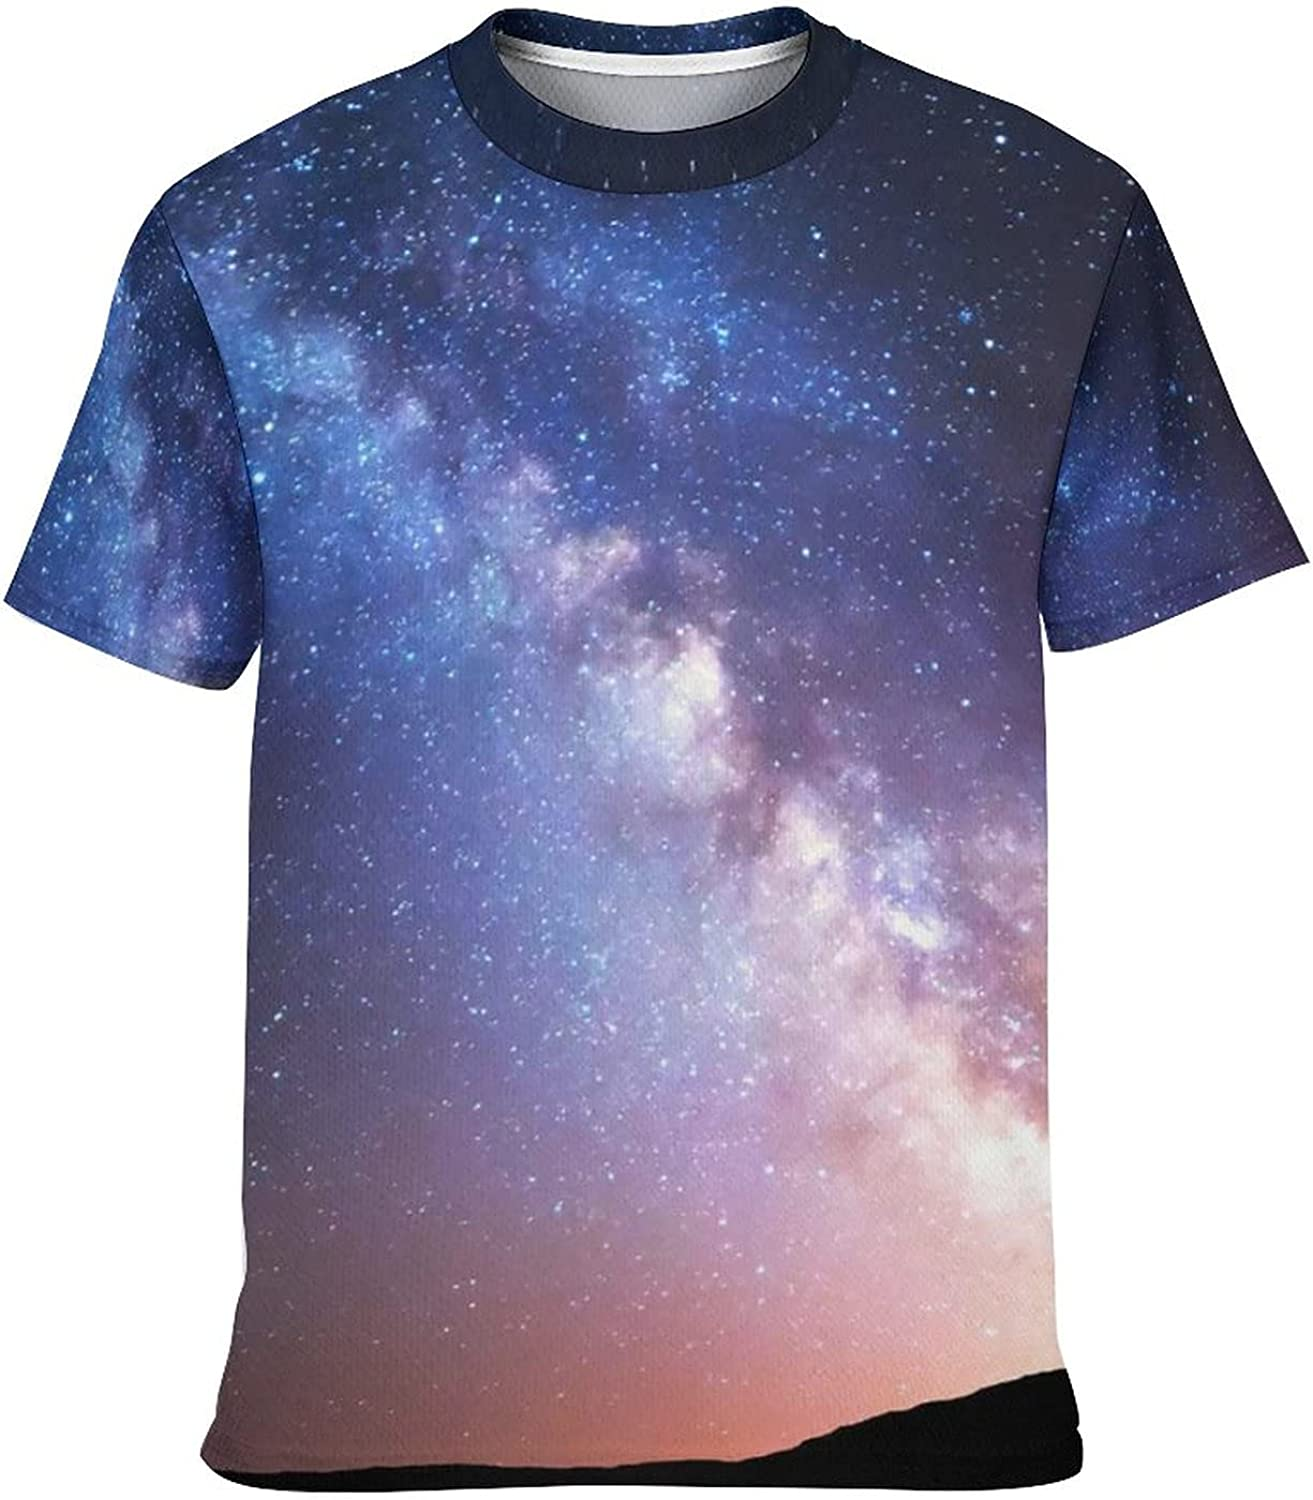 hsimnsi Short Sleeve Looking Up at The Stars T-Shirts for Kids,